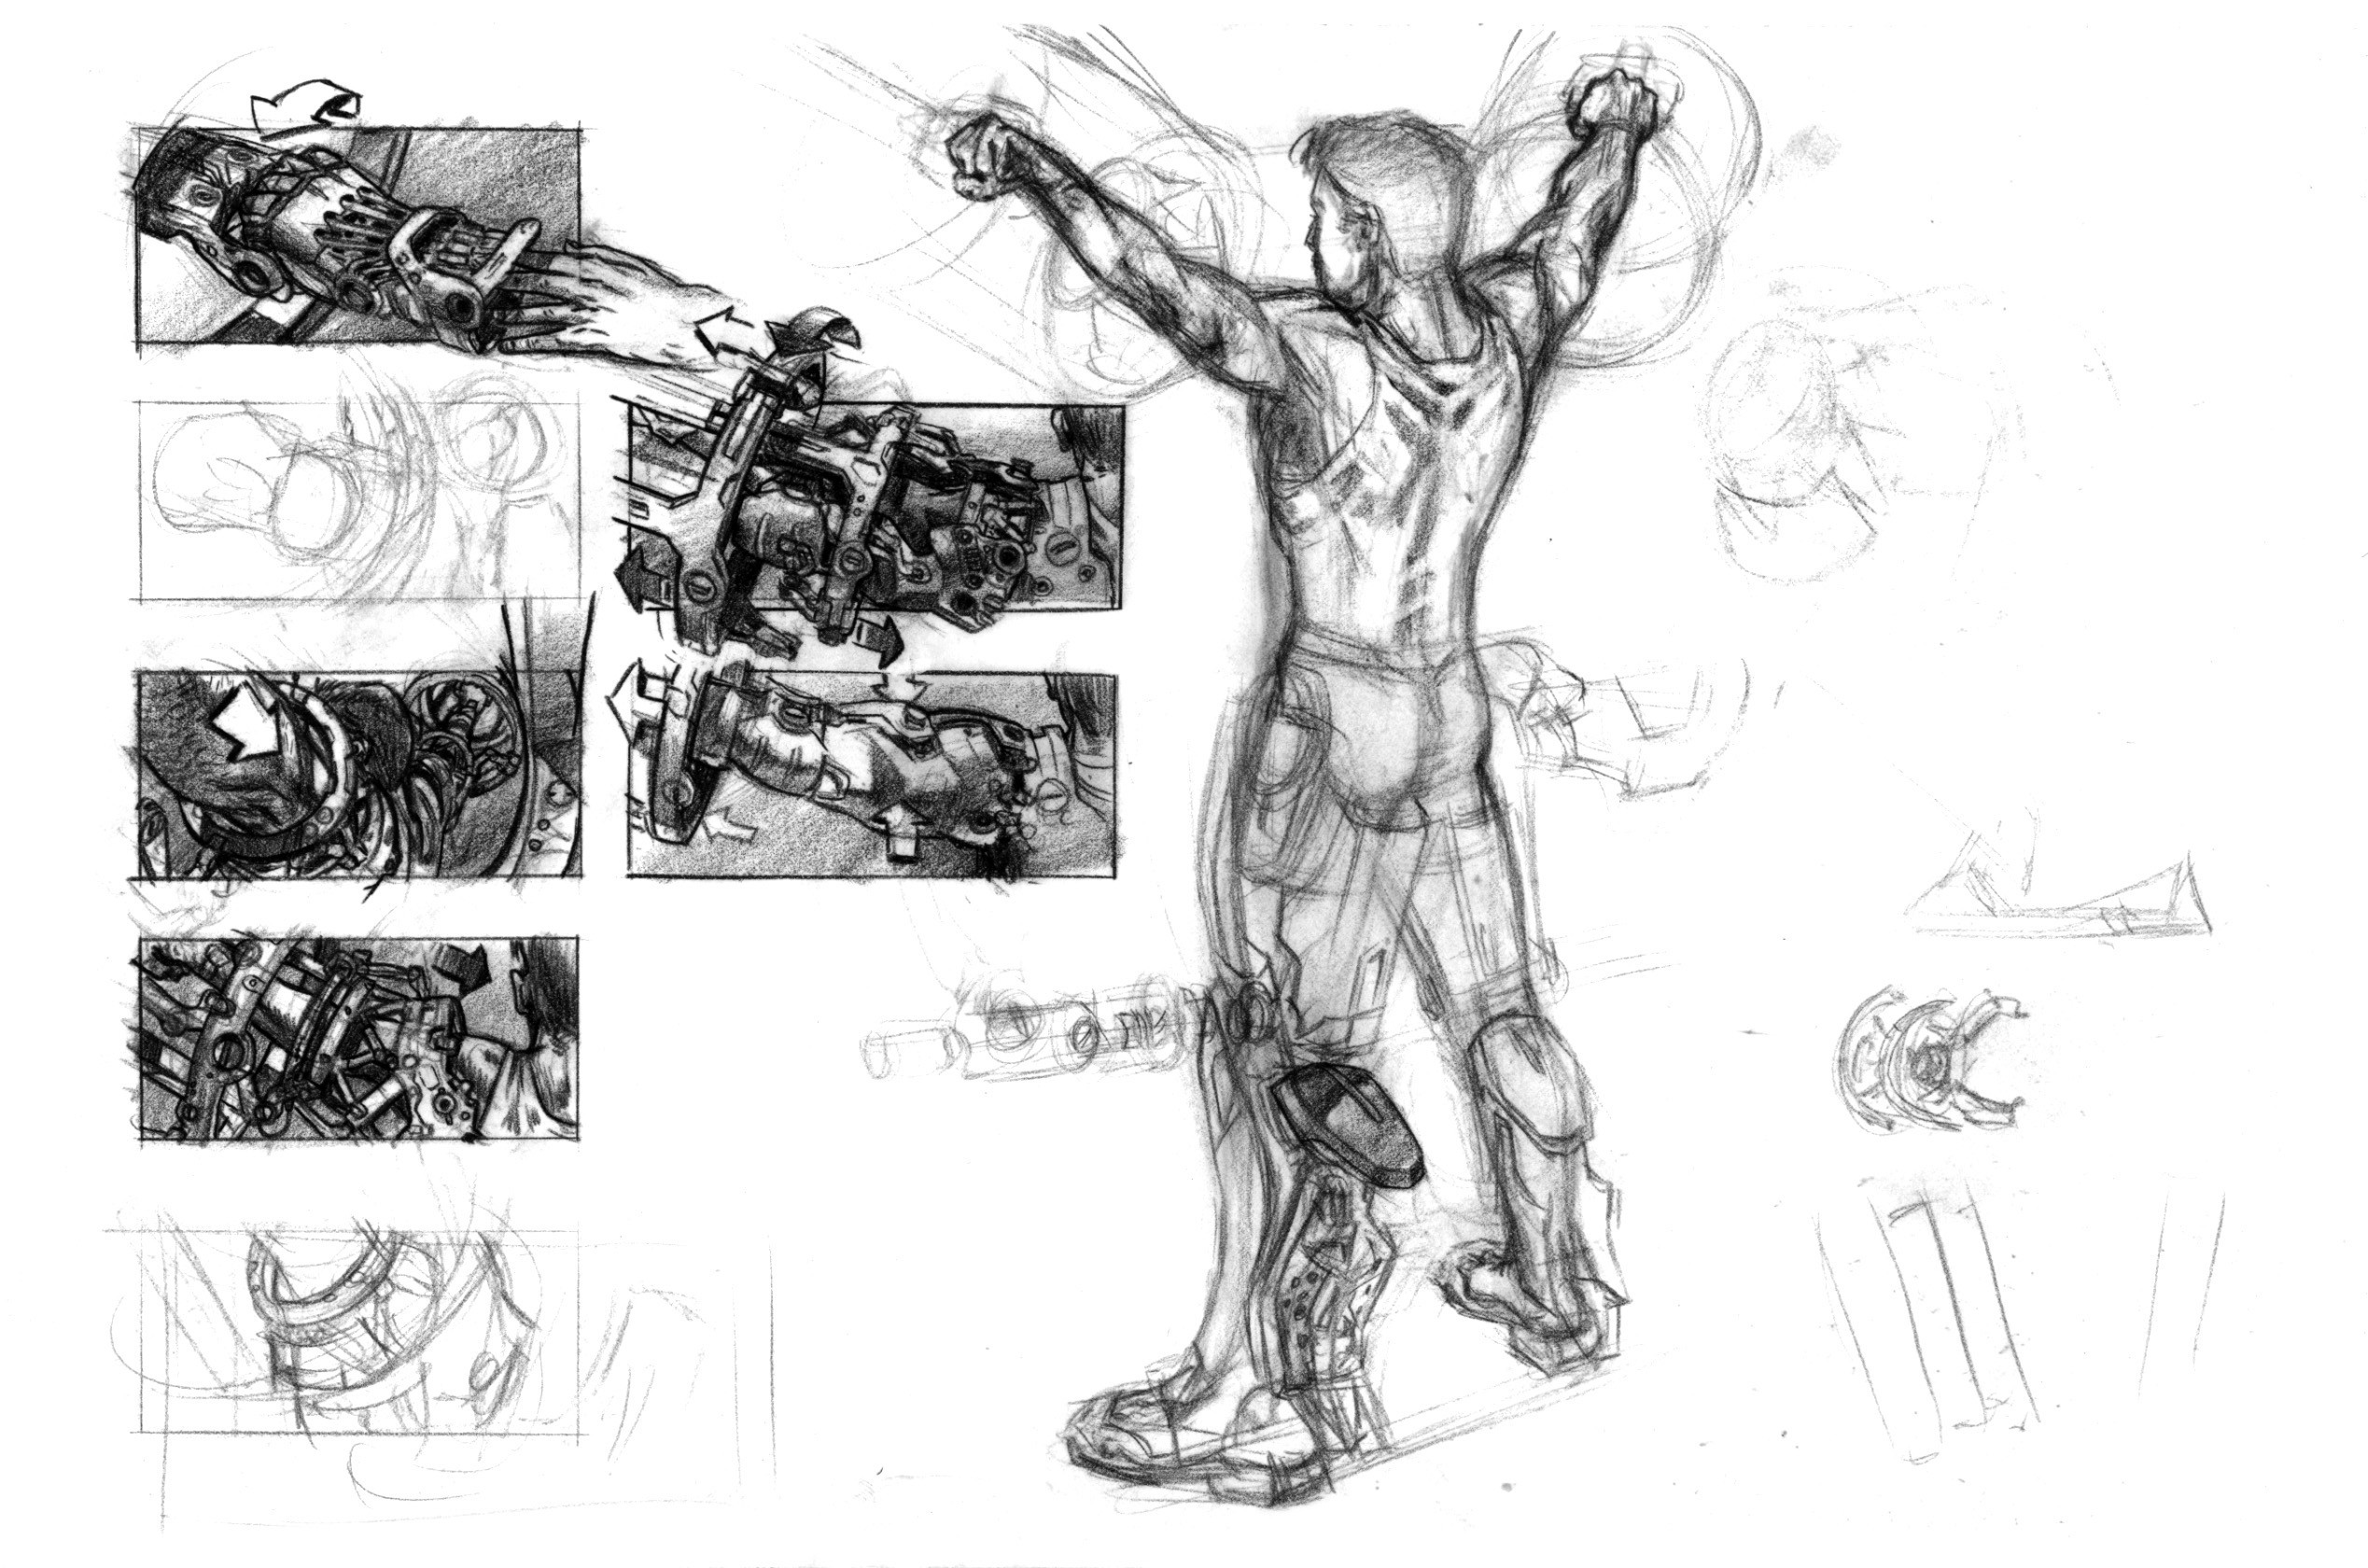 Suiting-up storyboards showing potential key shots in the suit-up sequence. (Pencil on vellum)